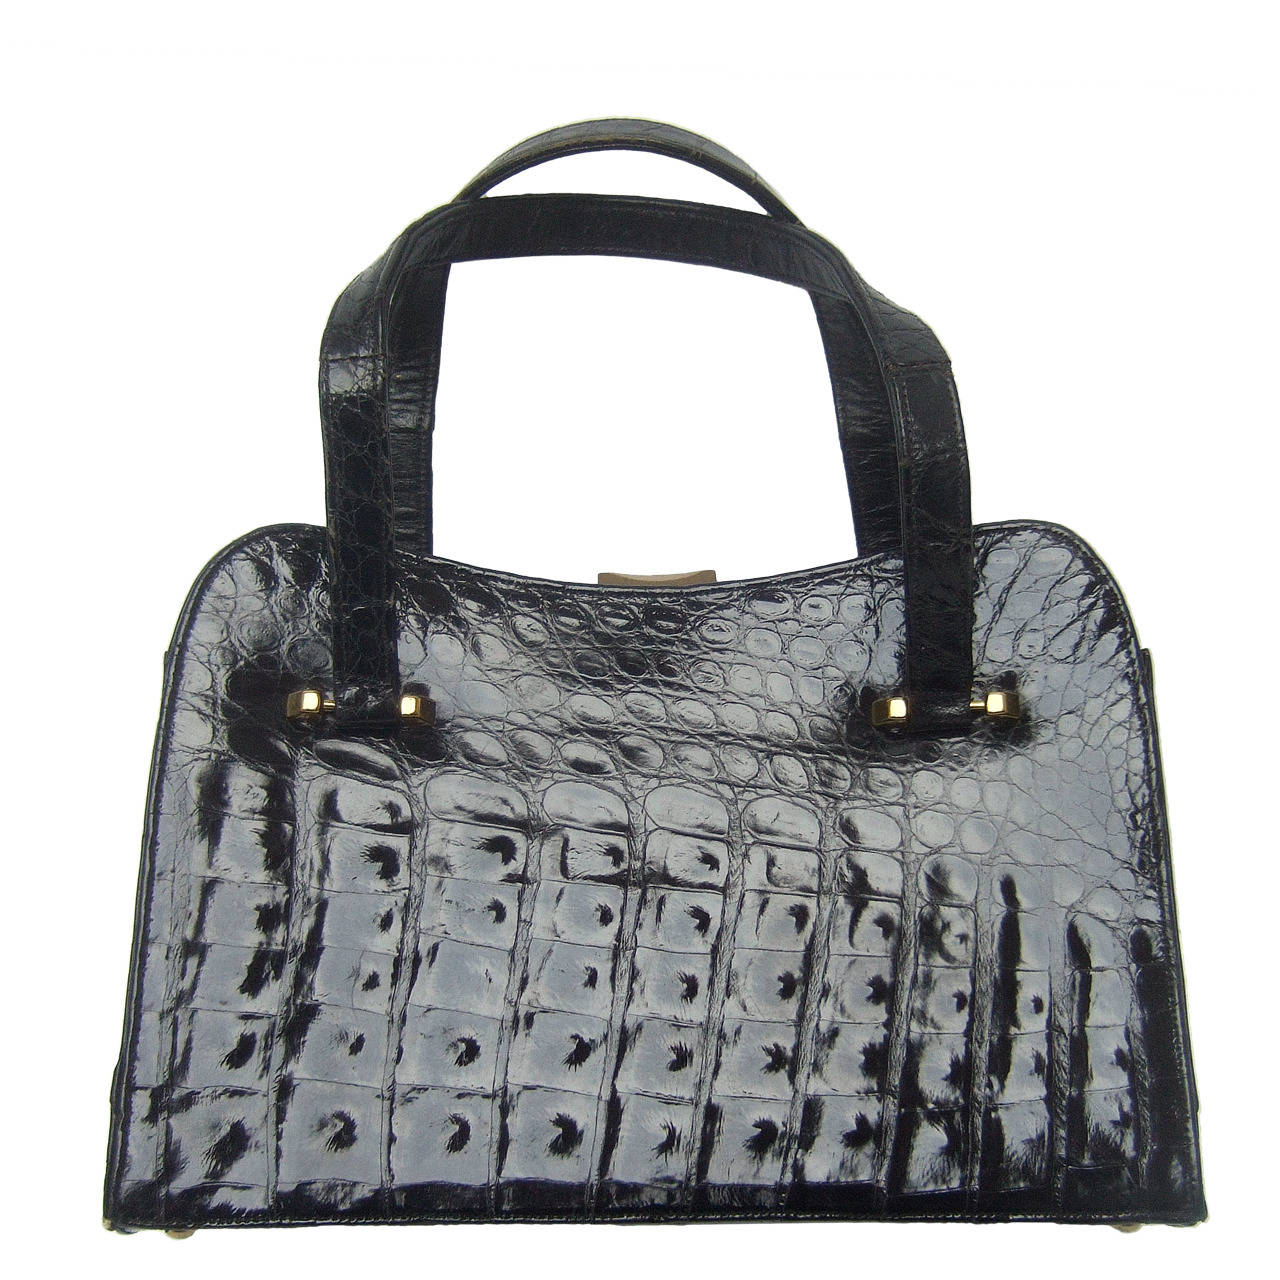 Exotic Sleek Black Alligator Handbag c 1960 For Sale